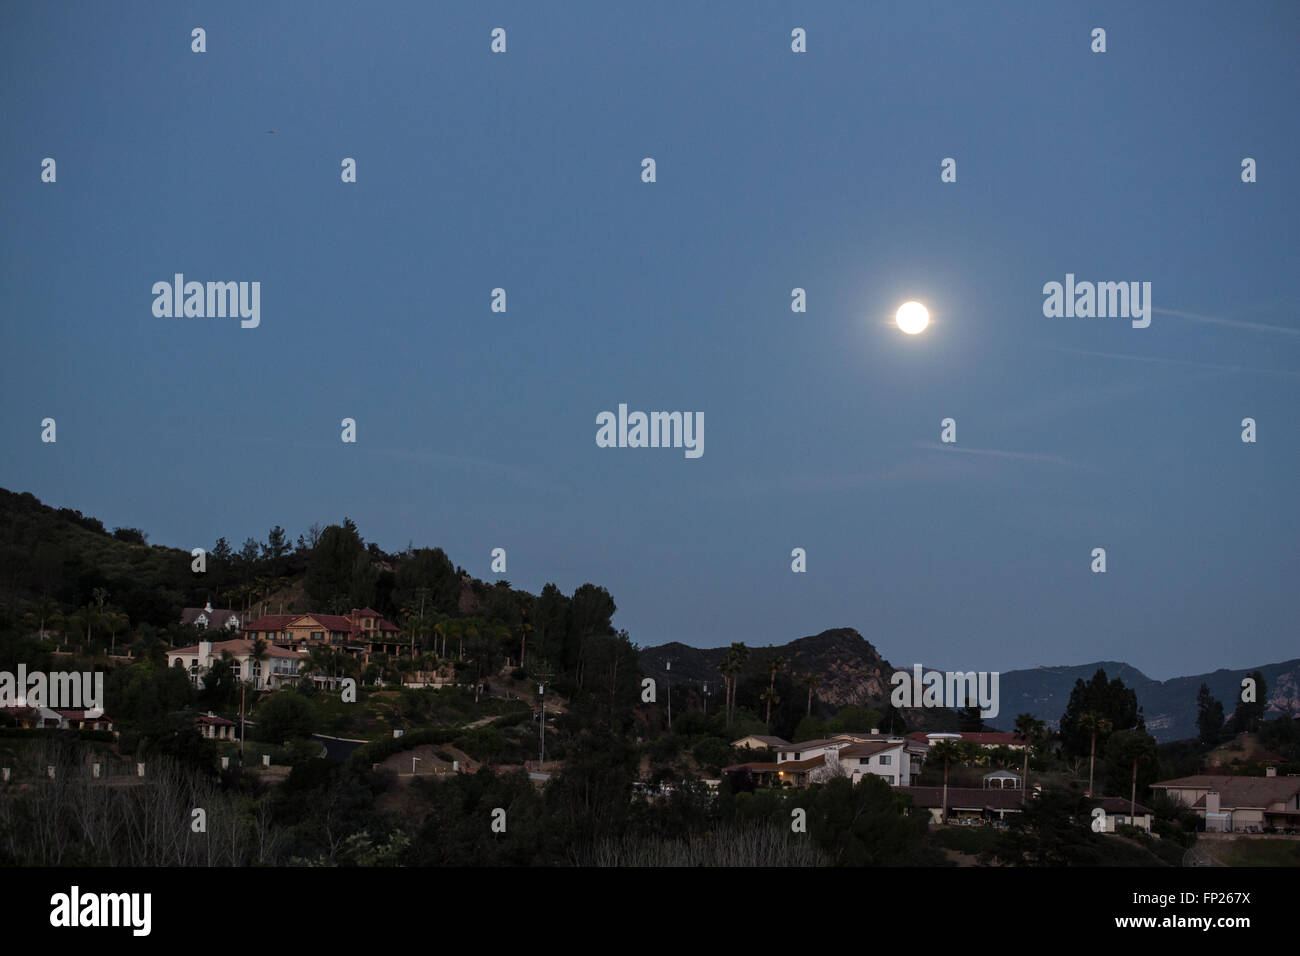 Full moon over a suburb in California - Stock Image